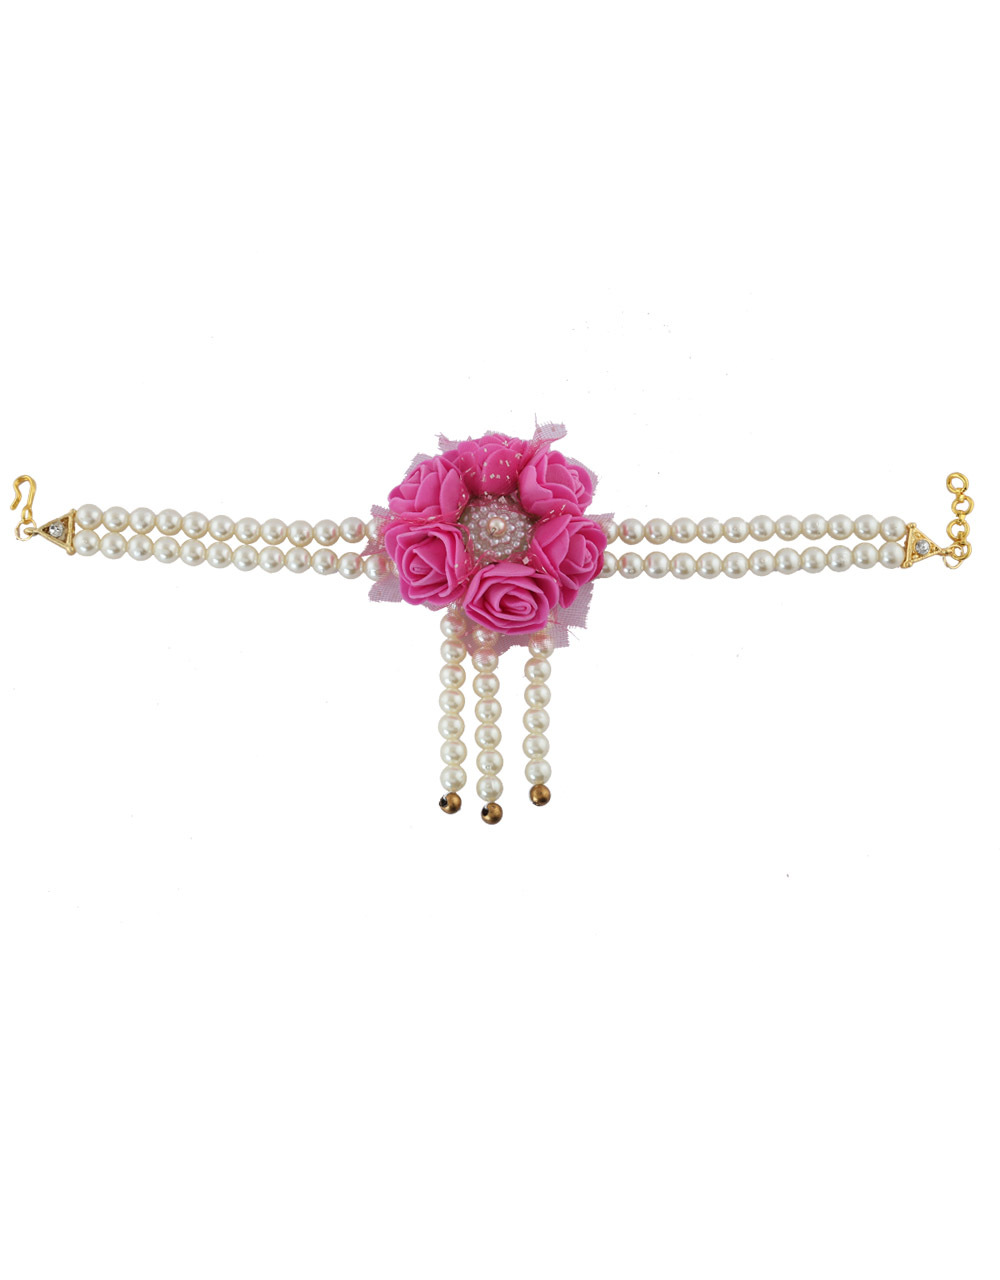 Pink Colour Handmade Jewelry Styled With Pearl Beads Flower Jewellery For Bride